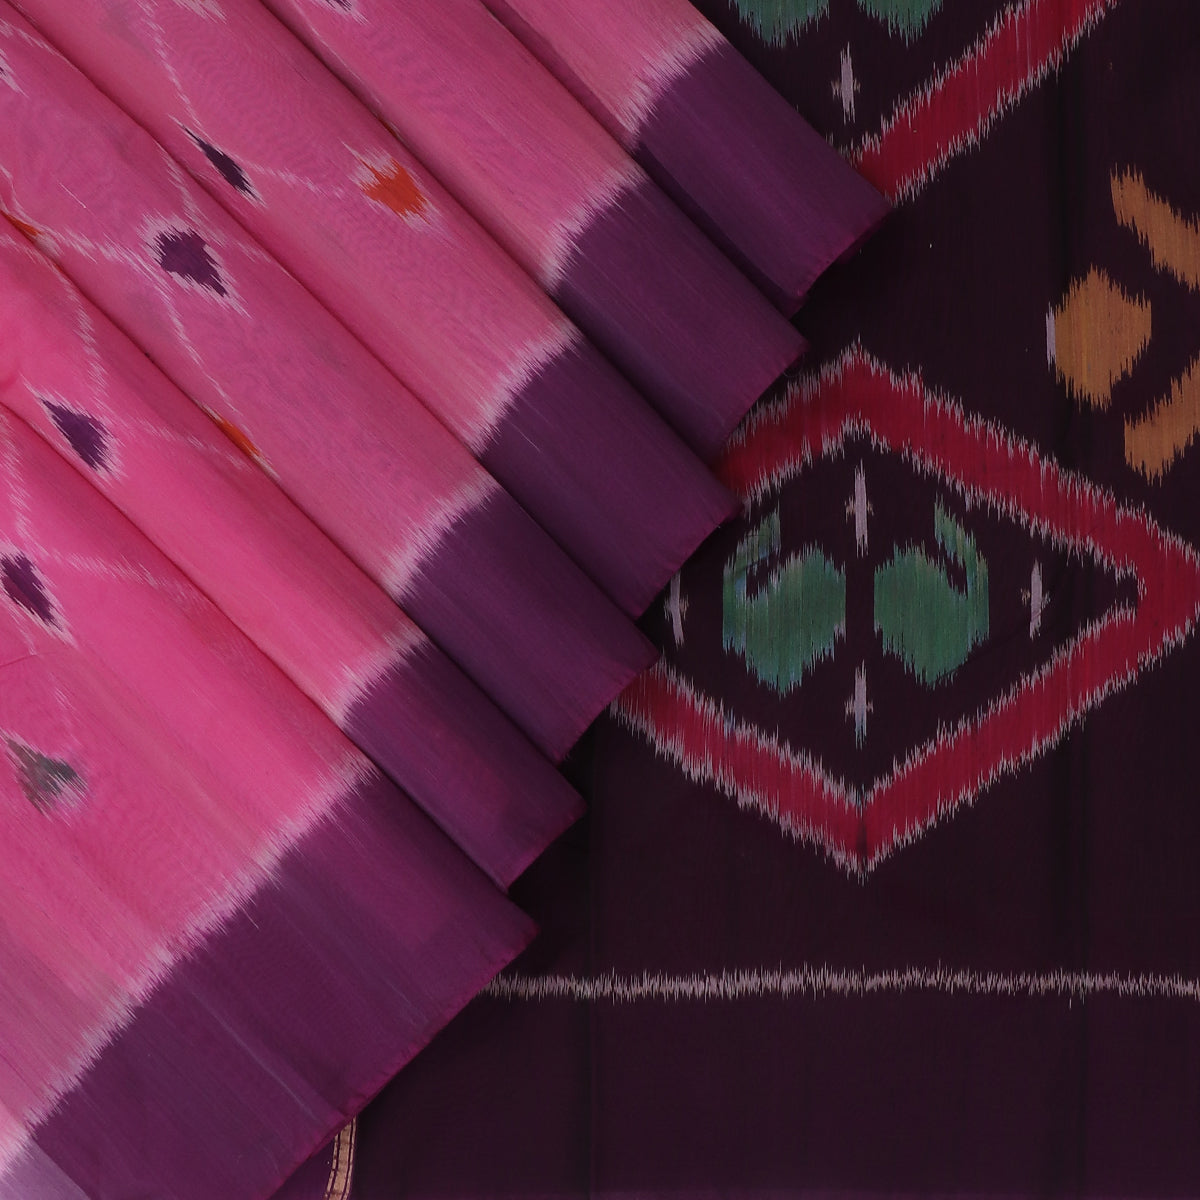 Kora silk Cotton saree Light Pink and Purple with Ikkat prints and Simple Border